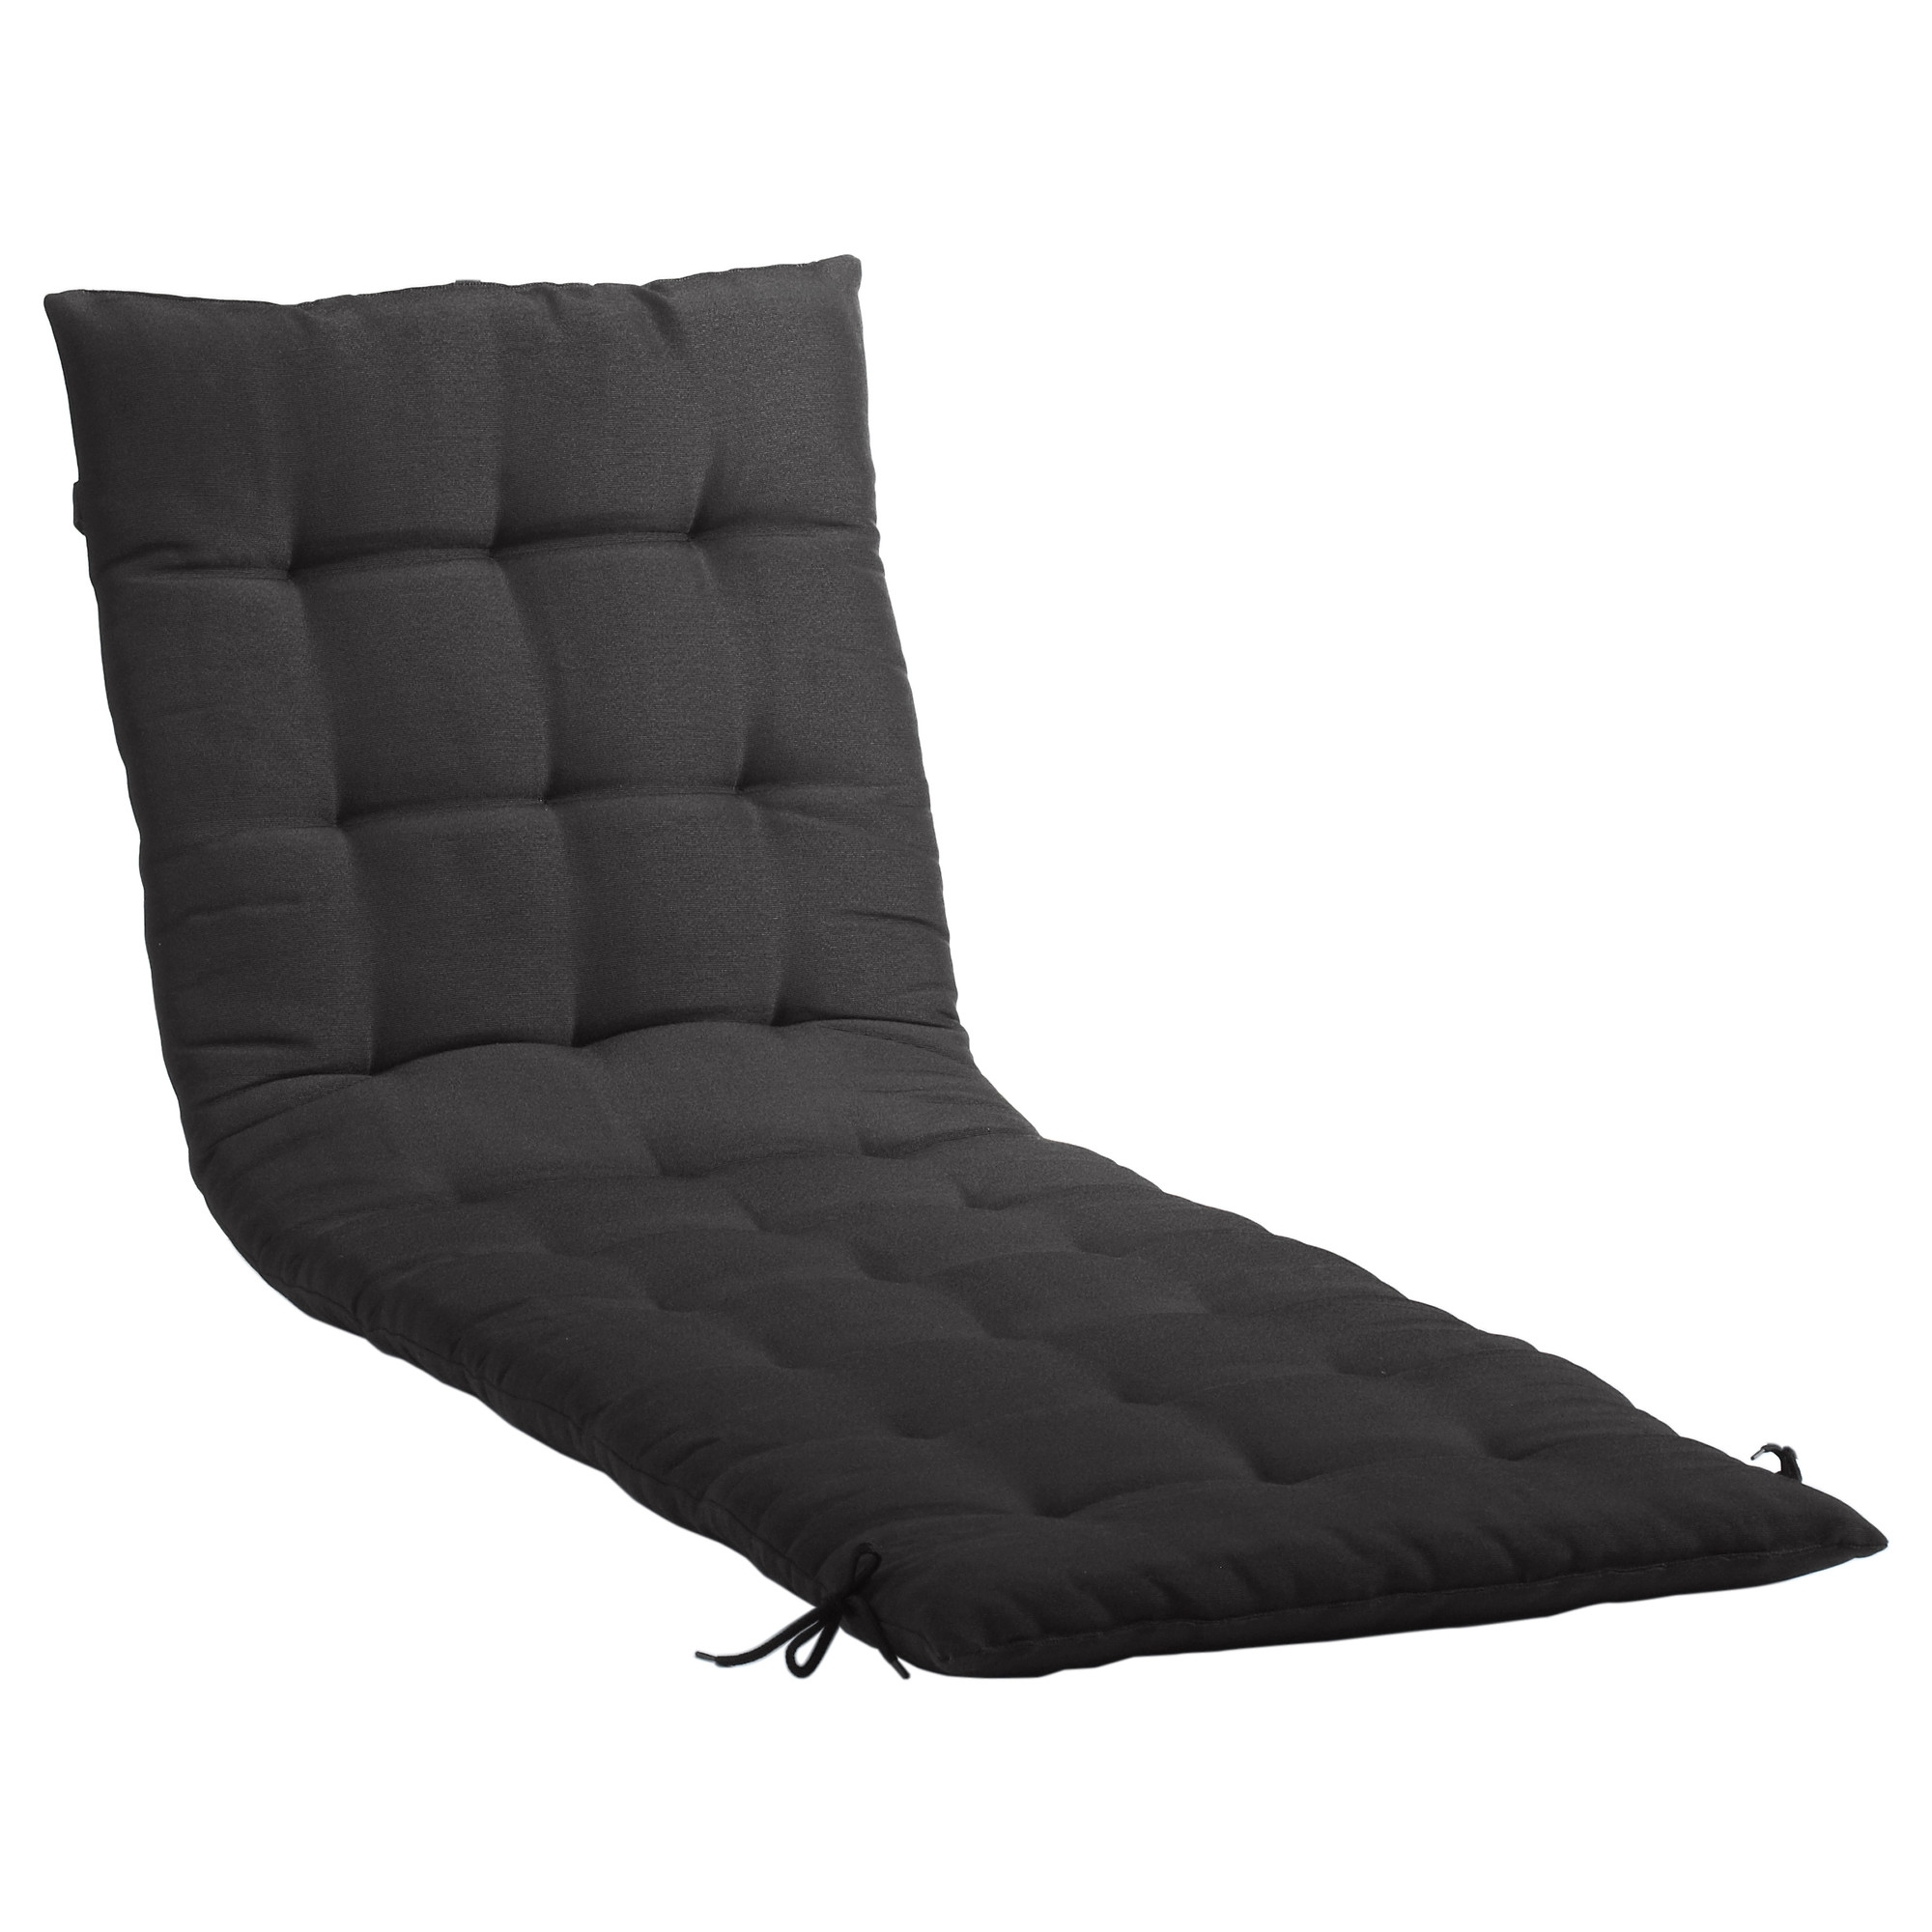 ikea lounges cool cover for chaise lounge luxury chaise. Black Bedroom Furniture Sets. Home Design Ideas